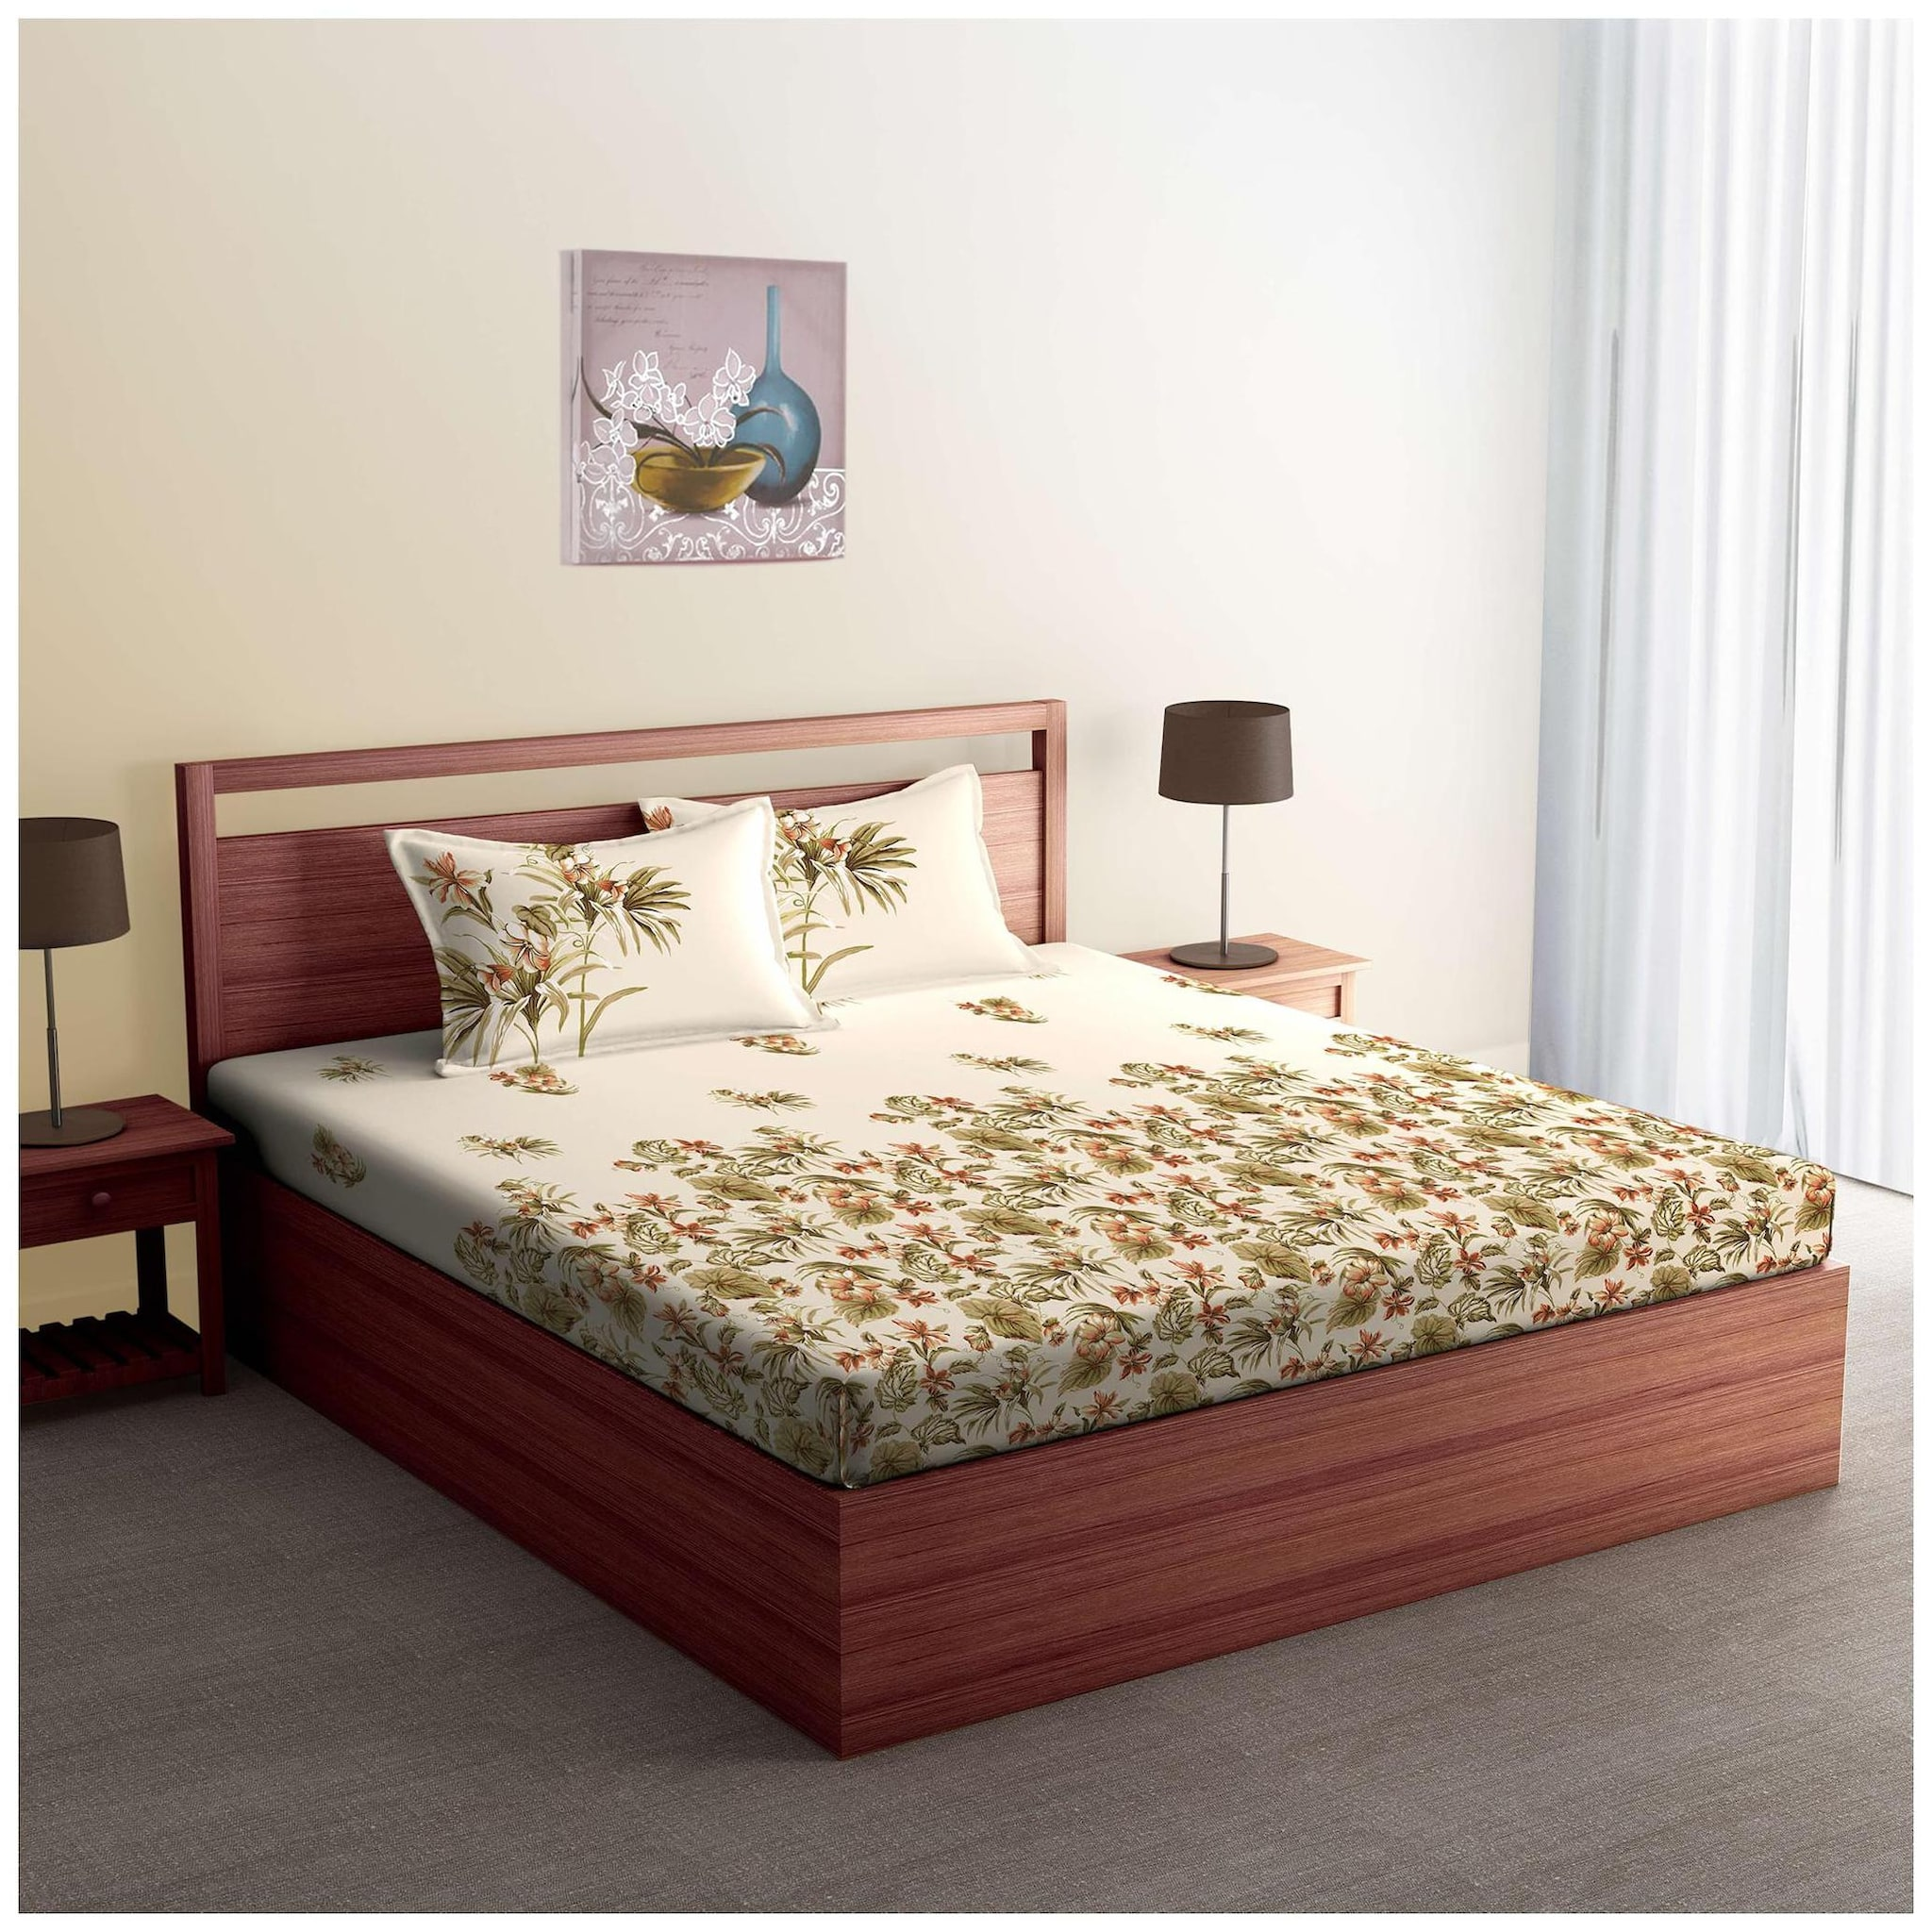 Spaces Atrium 1 Double Bed Sheet With 2 Pillow Covers